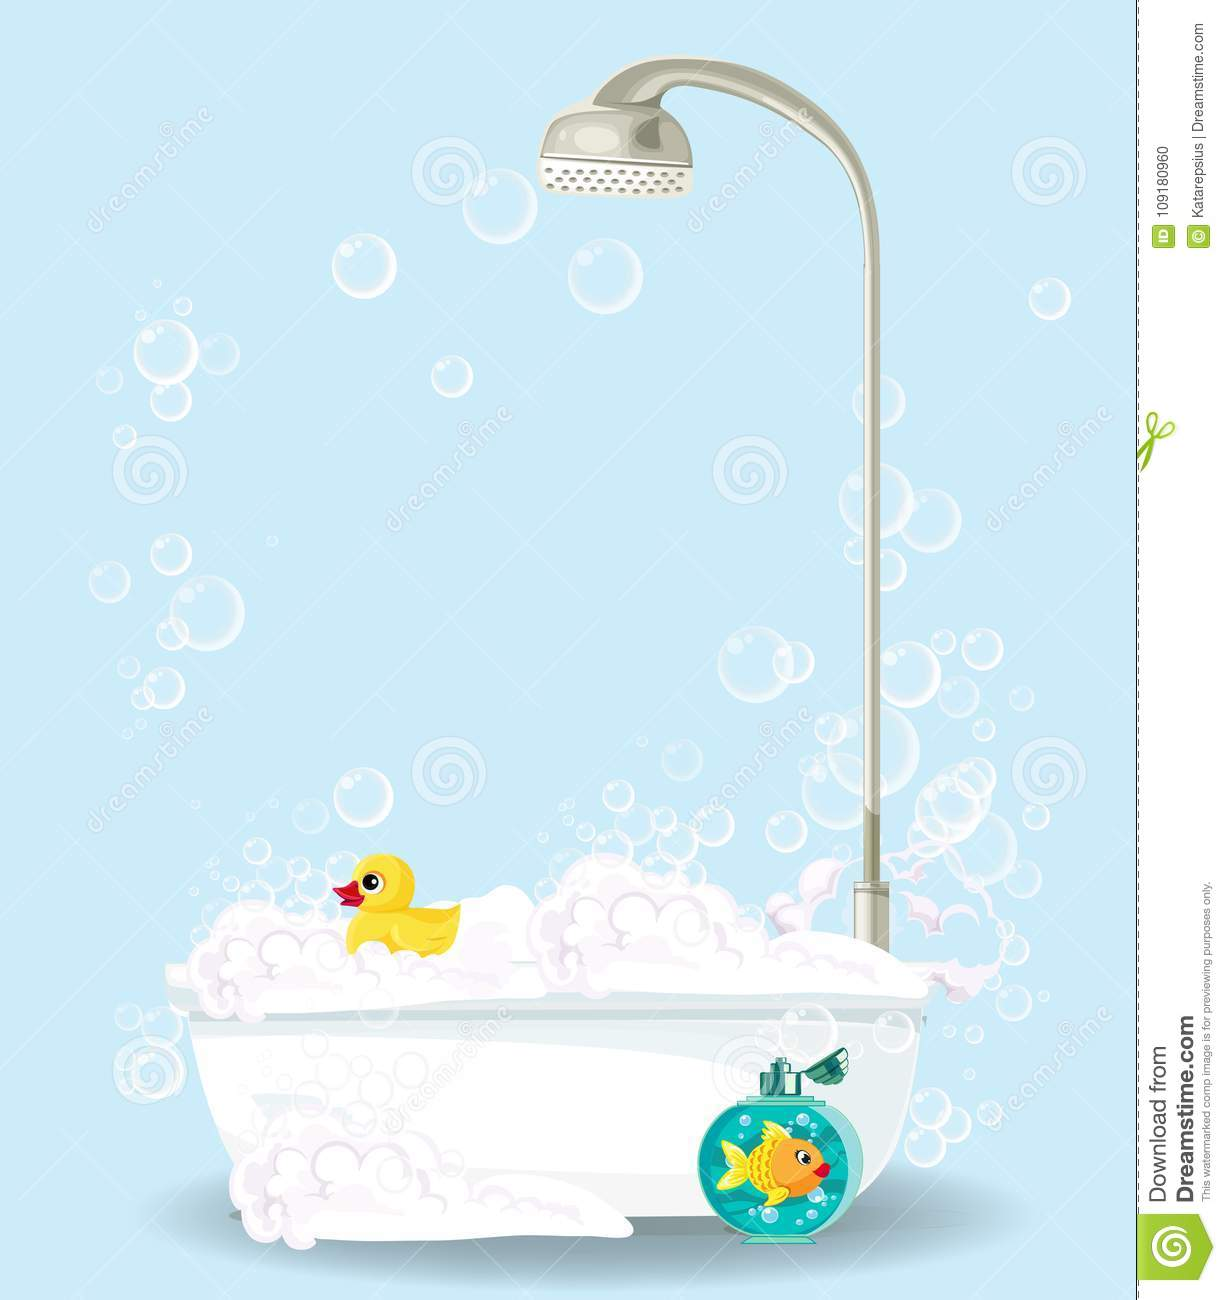 Cute Cartoon Illustration Of Bathtub On Blue Stock Vector ...